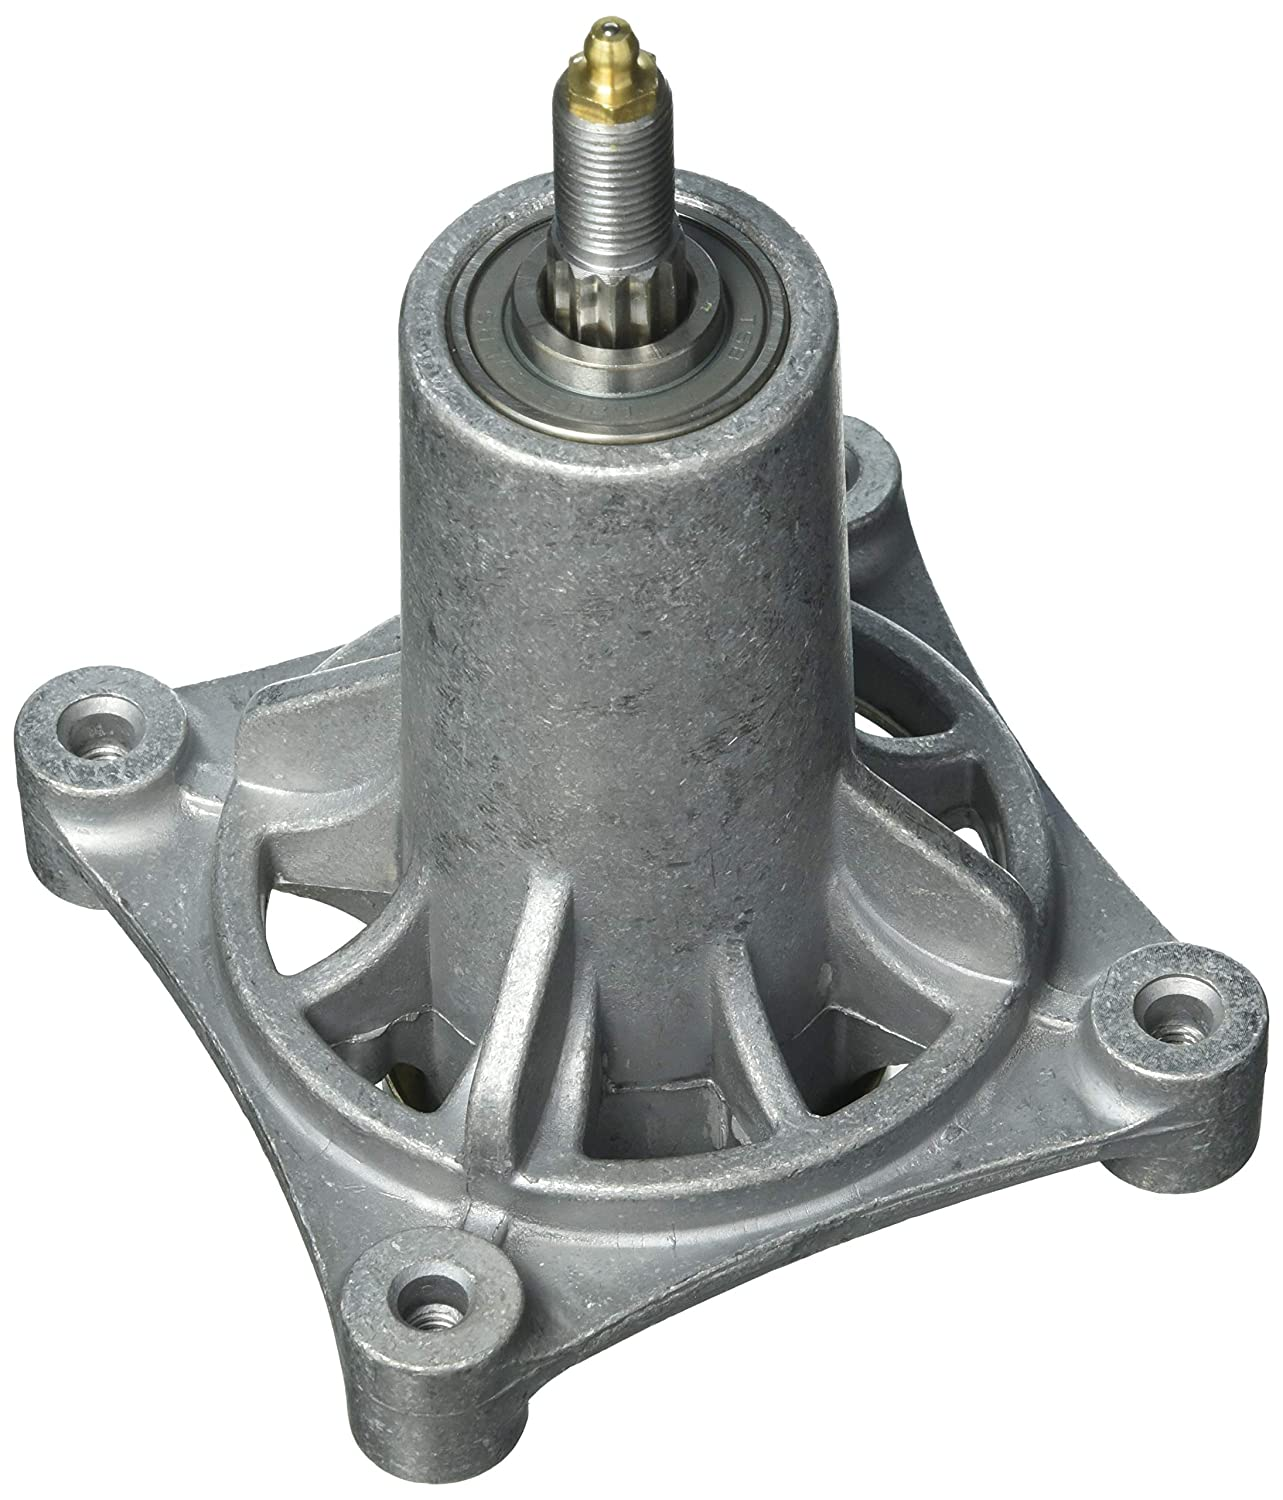 187292 192870 532187292 532192870 Spindle Assembly Wiring Diagram Husqvarna Rz 5426 With Grease Zerk Craftsman Poulan Lawn Mower Handle Parts Garden Outdoor